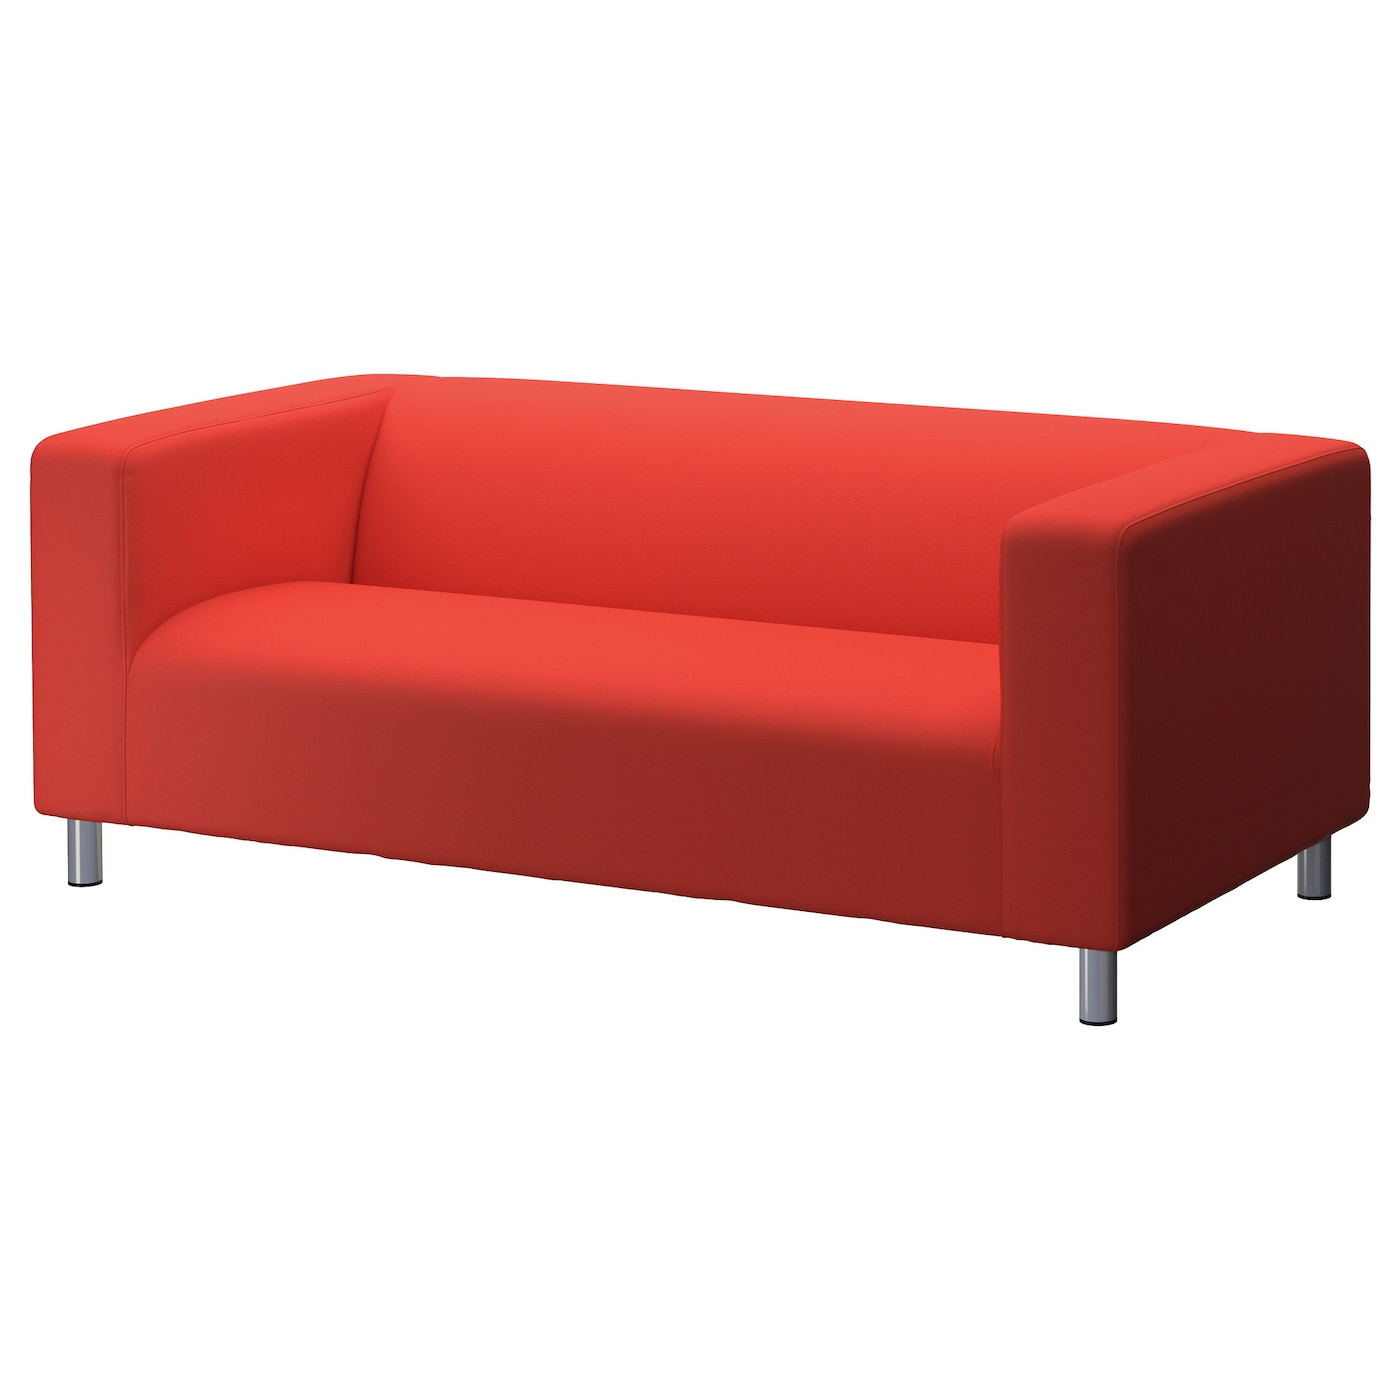 Klippan cover two seat sofa flackarp red orange ikea - Sofas tres plazas baratos ...